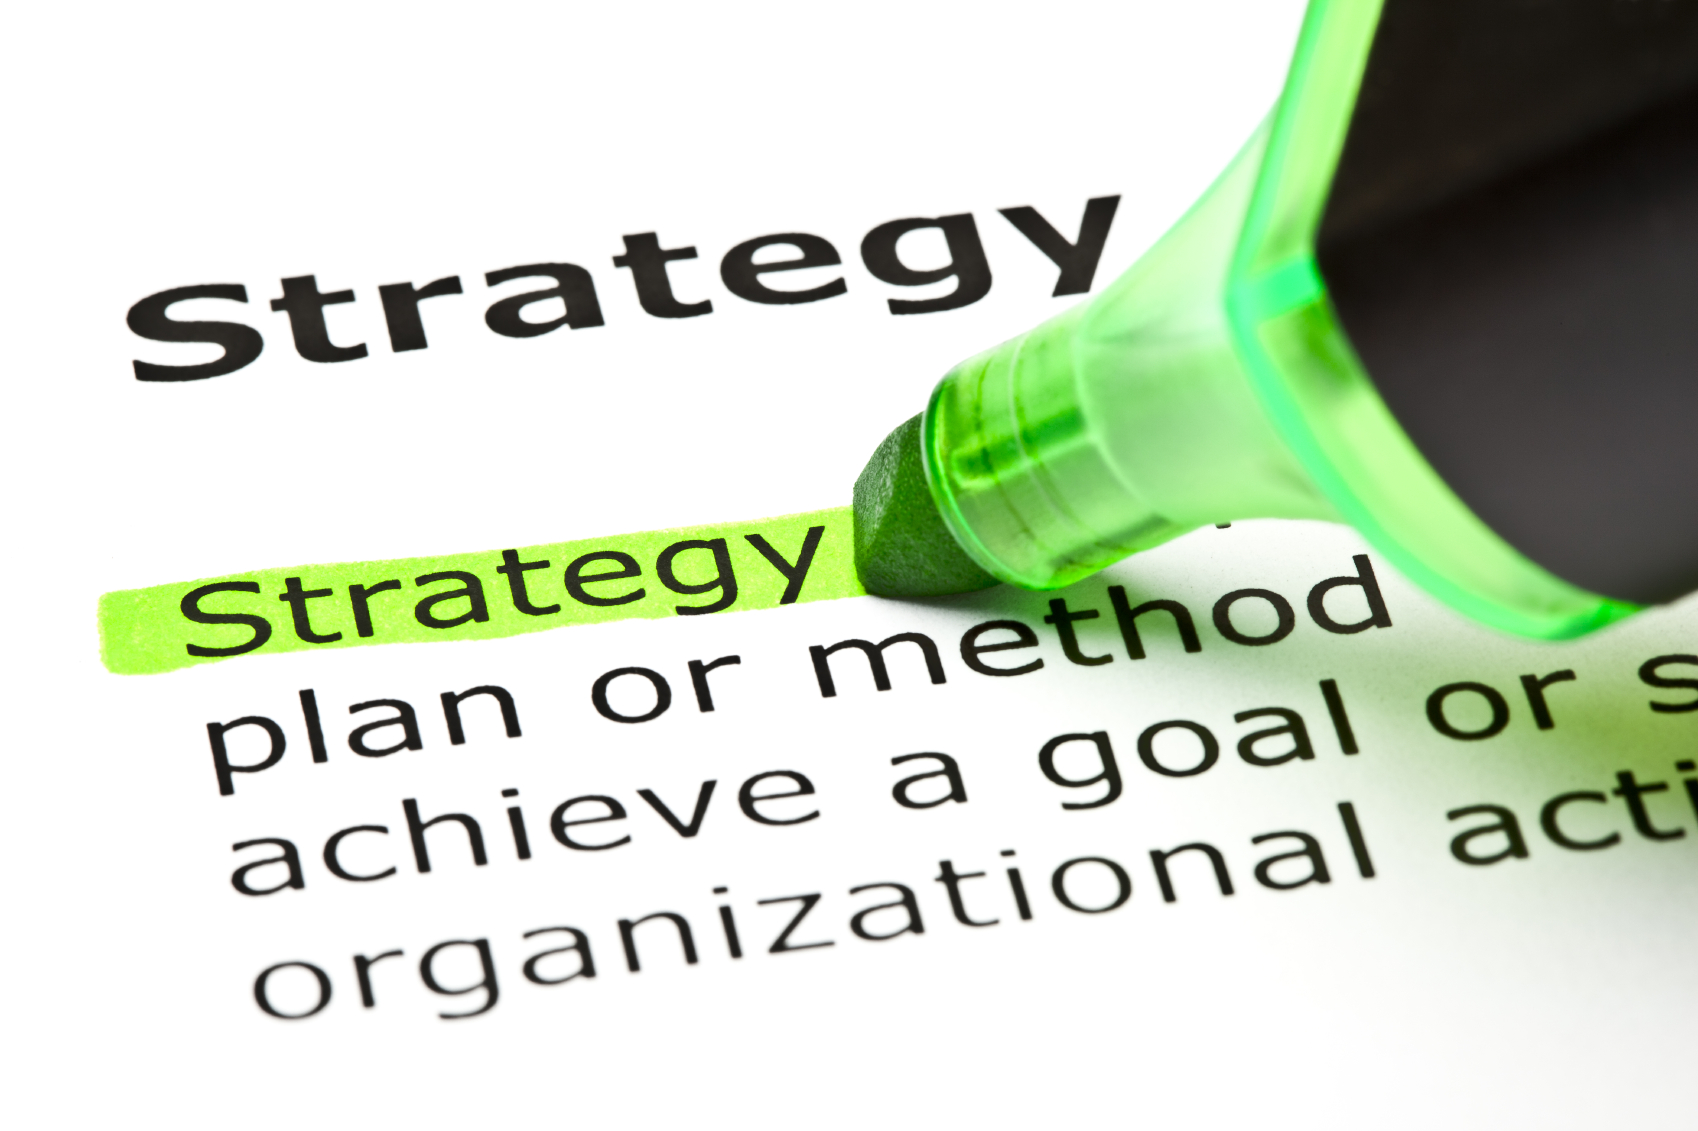 a description of the importance of enhancing marketing plan An important, but frequently you find yourself achieving more and more success, in terms of generating favorable publicity, enhancing your public image, and successful implementation of an effective public relations strategy can be a critical component to a marketing plan a public.